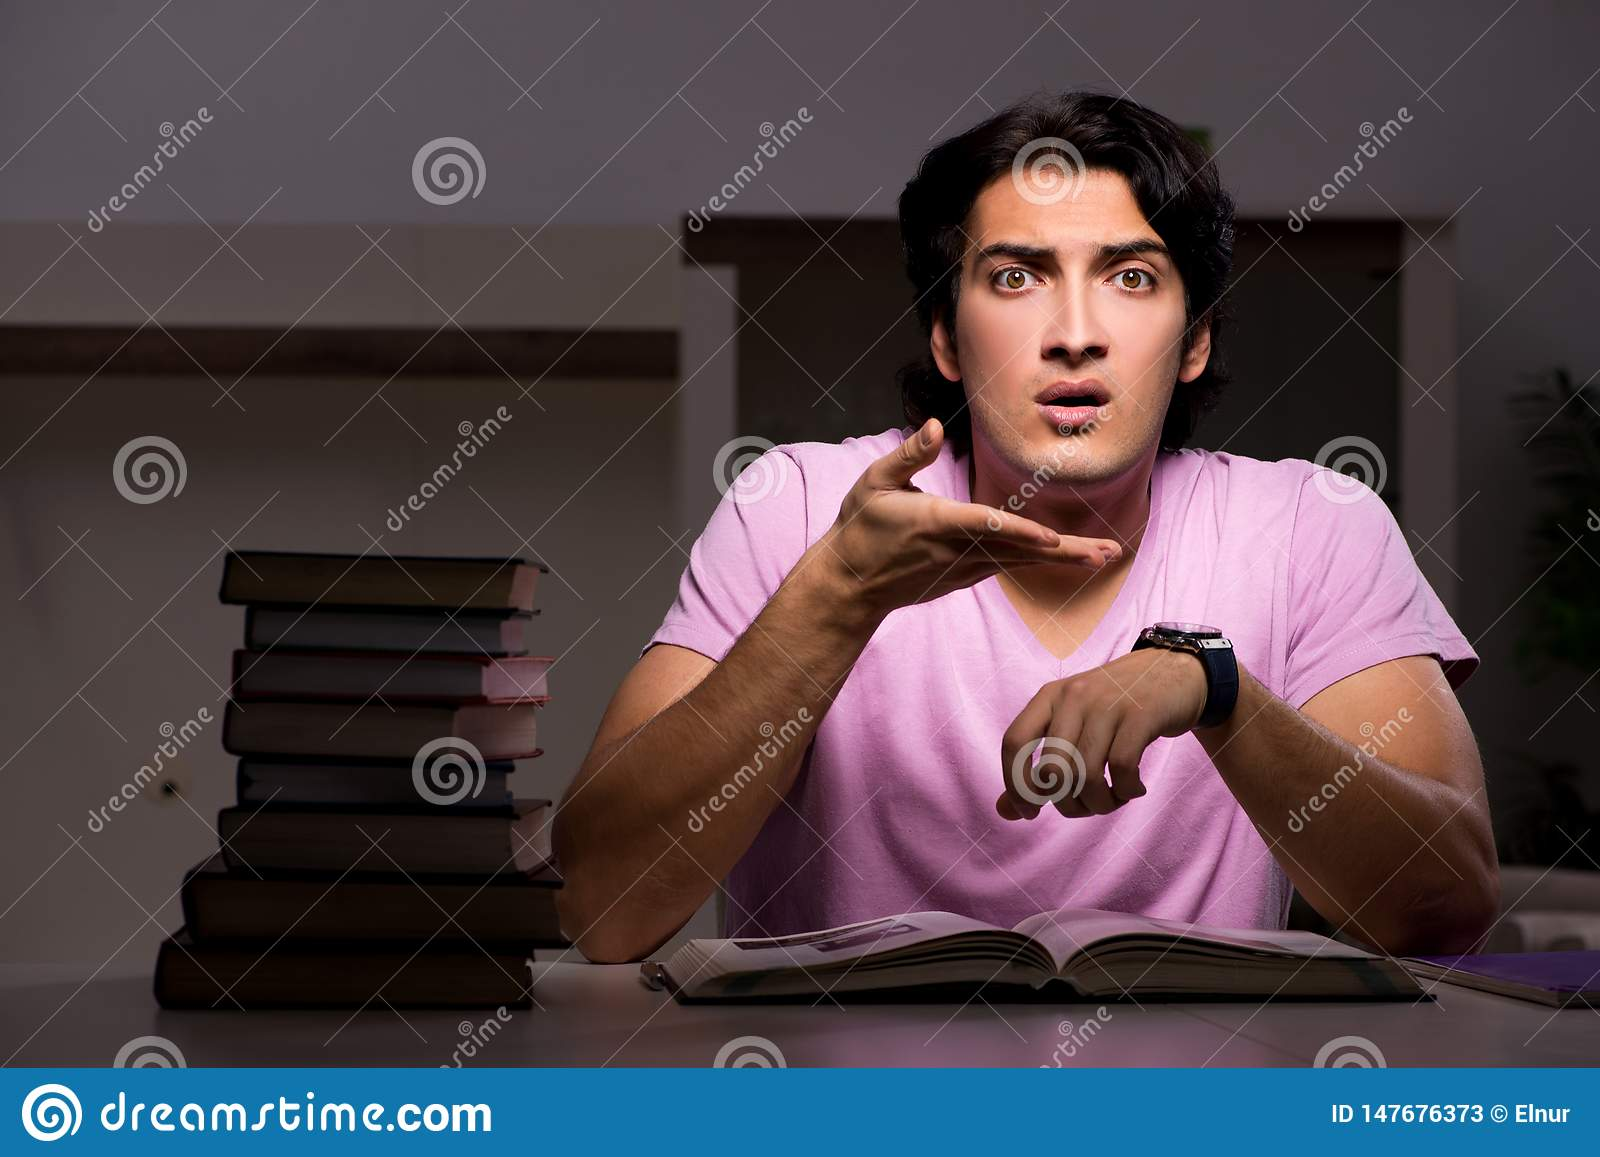 The male handsome student preparing for exams late at home